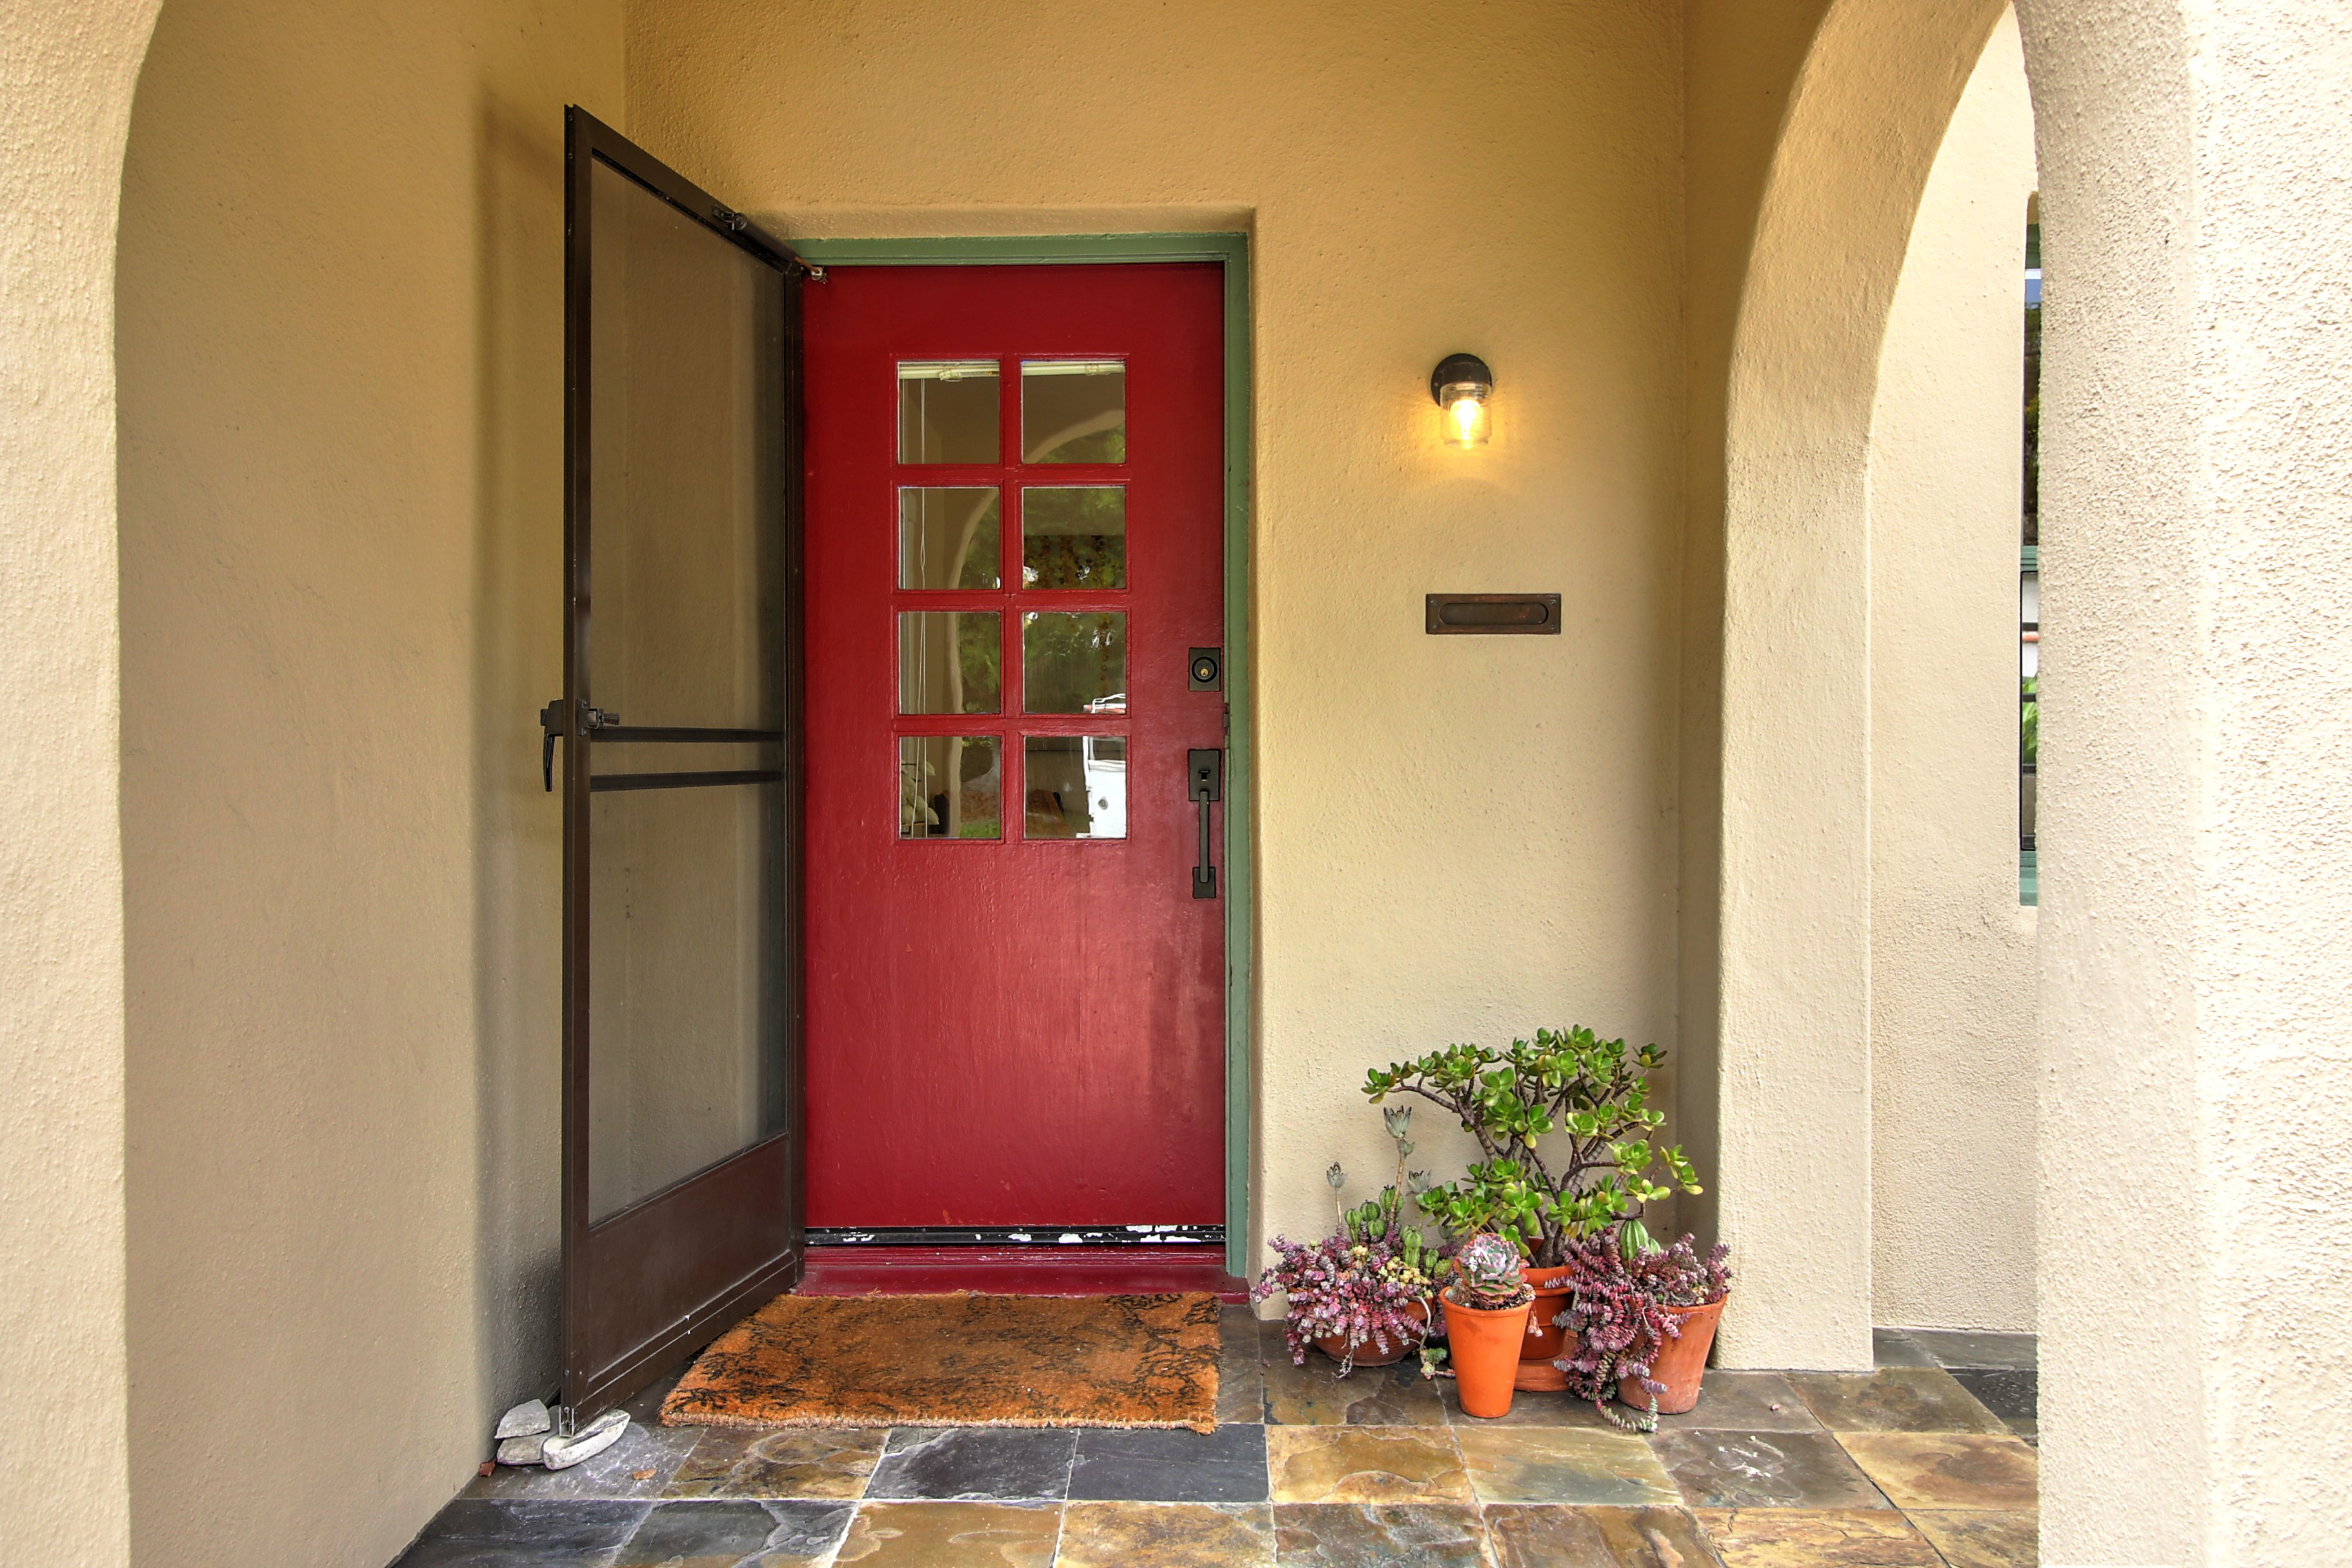 This is one of those where you walk in the door and want to stay awhile or be friends with the owners and be invited over for BBQ\u0027s and a soak in their ... & 812 West Valerio Street Santa Barbara CA 93101 - Elizabeth ...